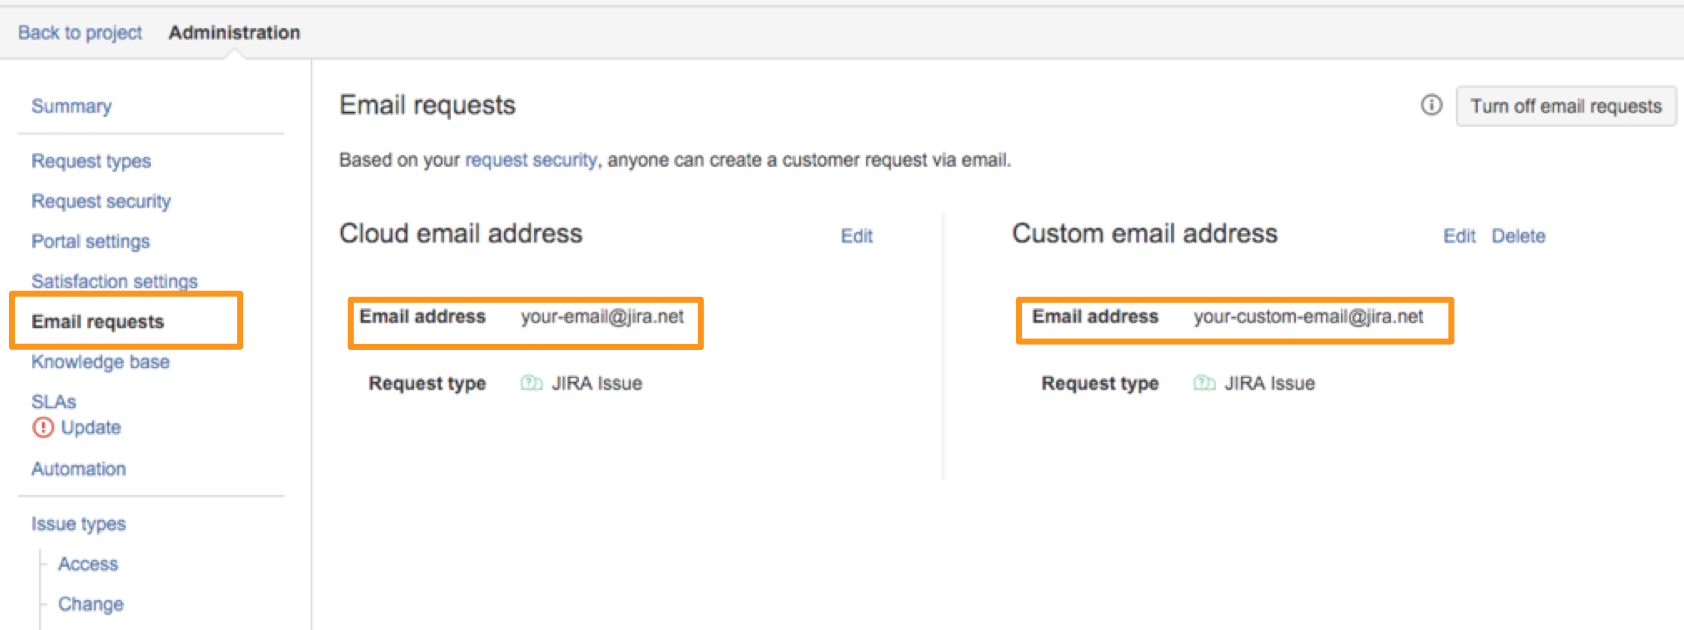 projects administration page and selectEmail requests